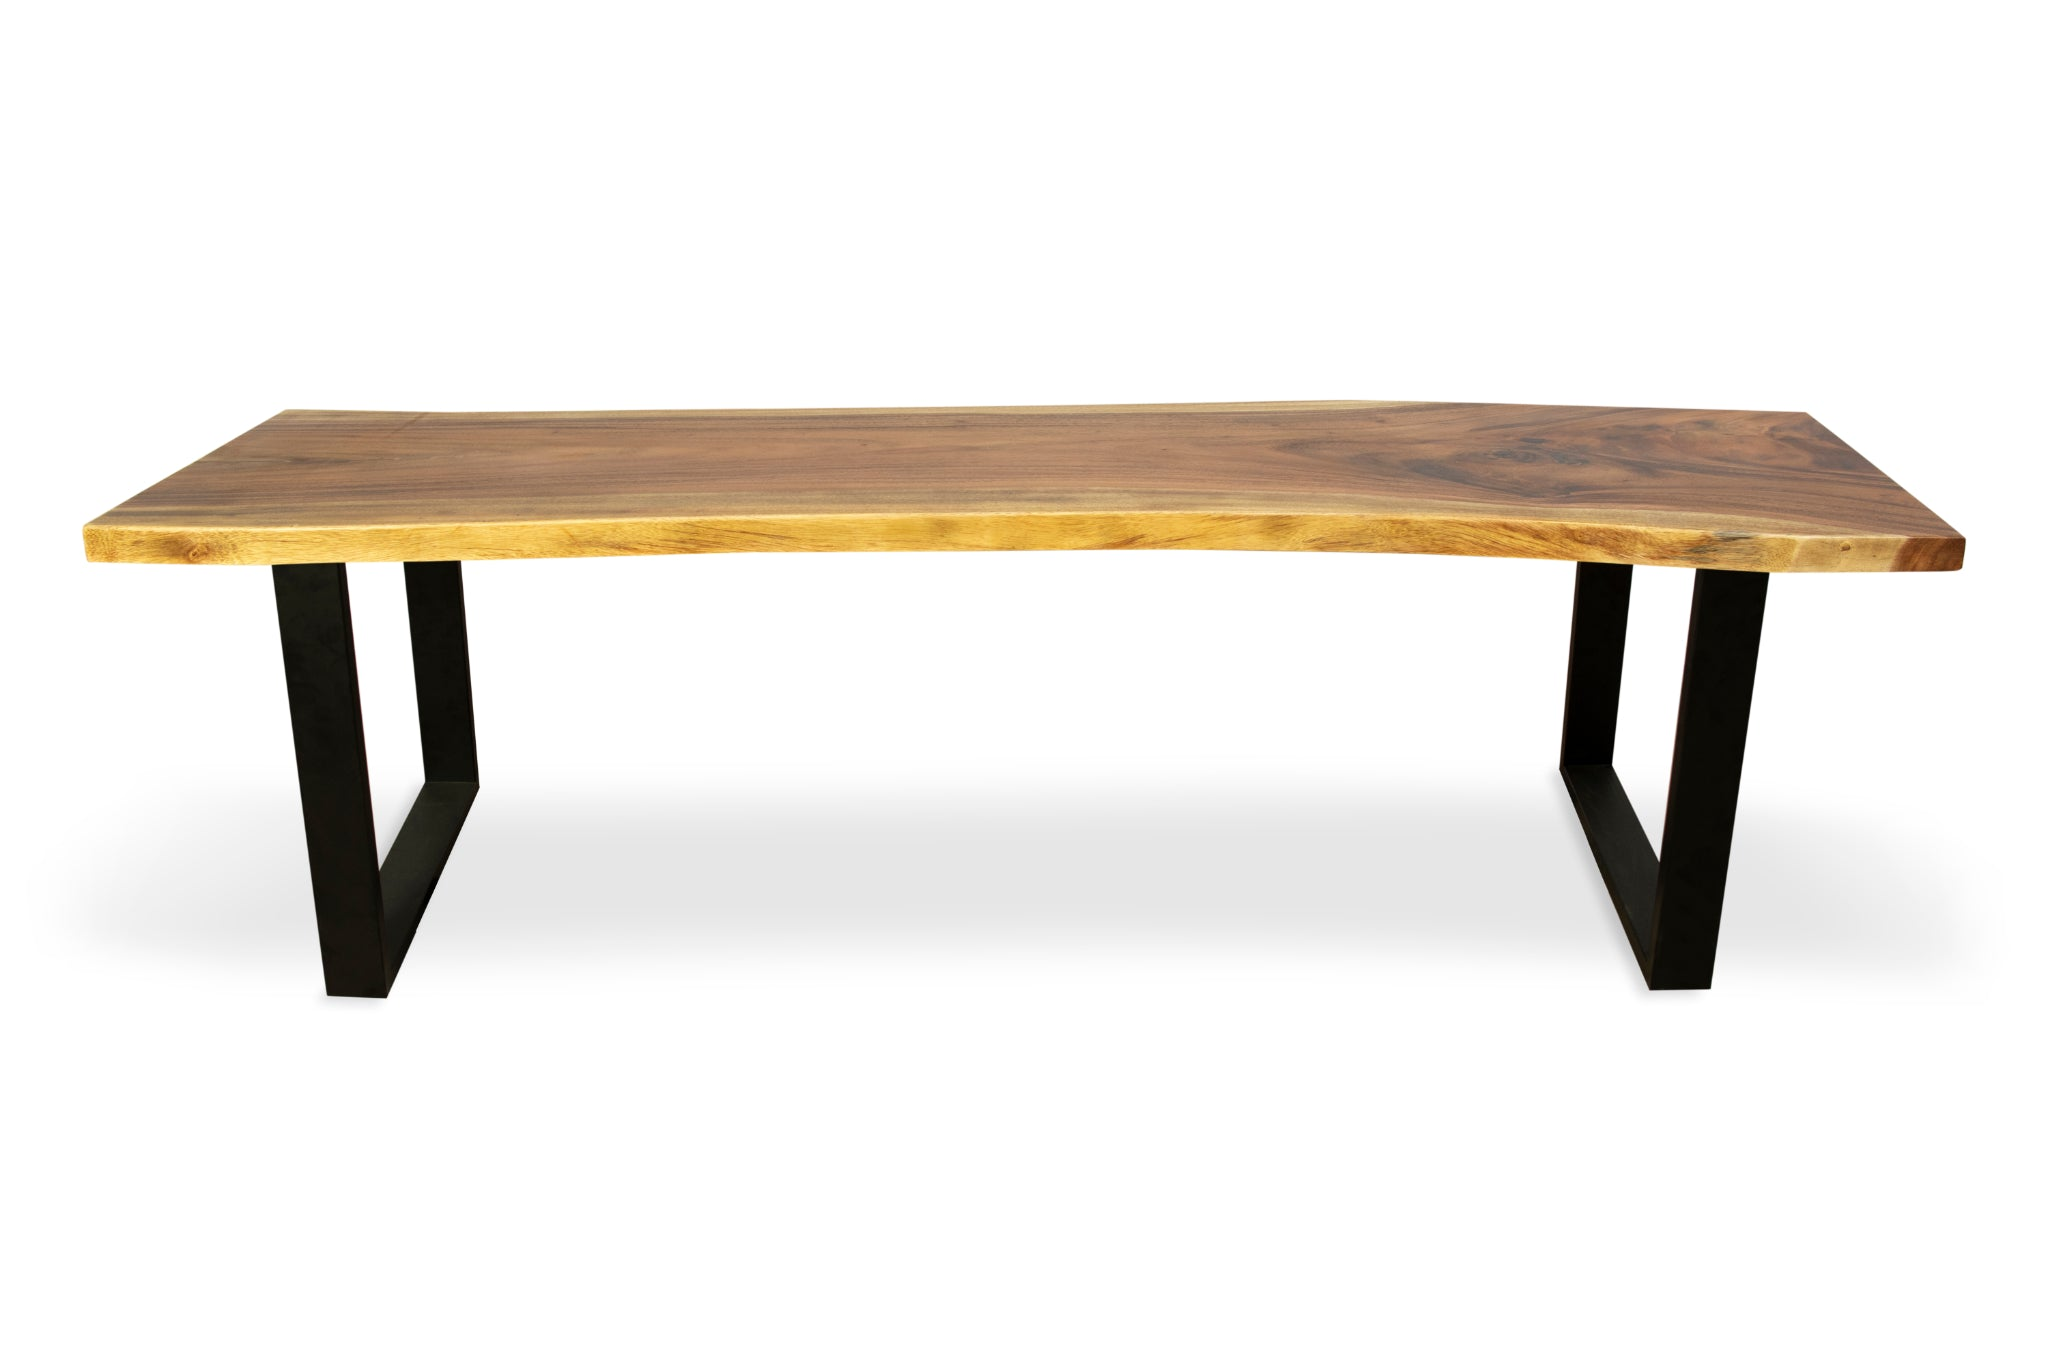 LAD024 - Acacia Live-edge Table